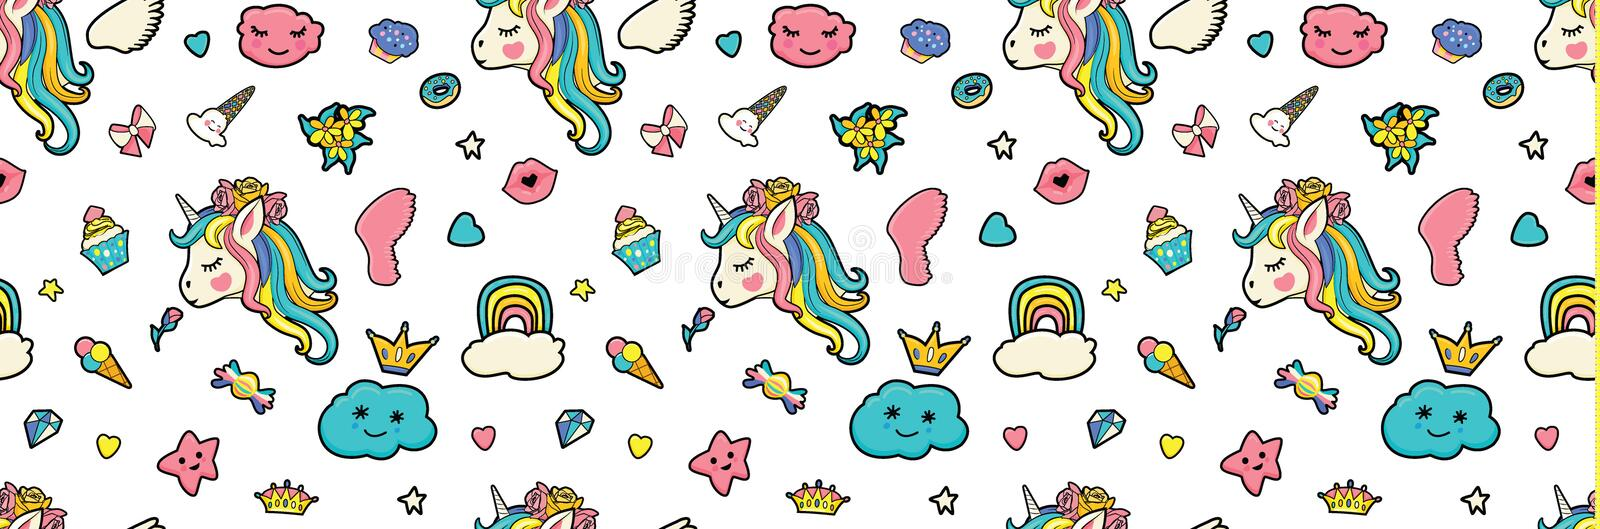 Pattern with cute faces of unicorns, ice cream, stars, hearts, donut, rainbow, crowns, cupcake vector illustration